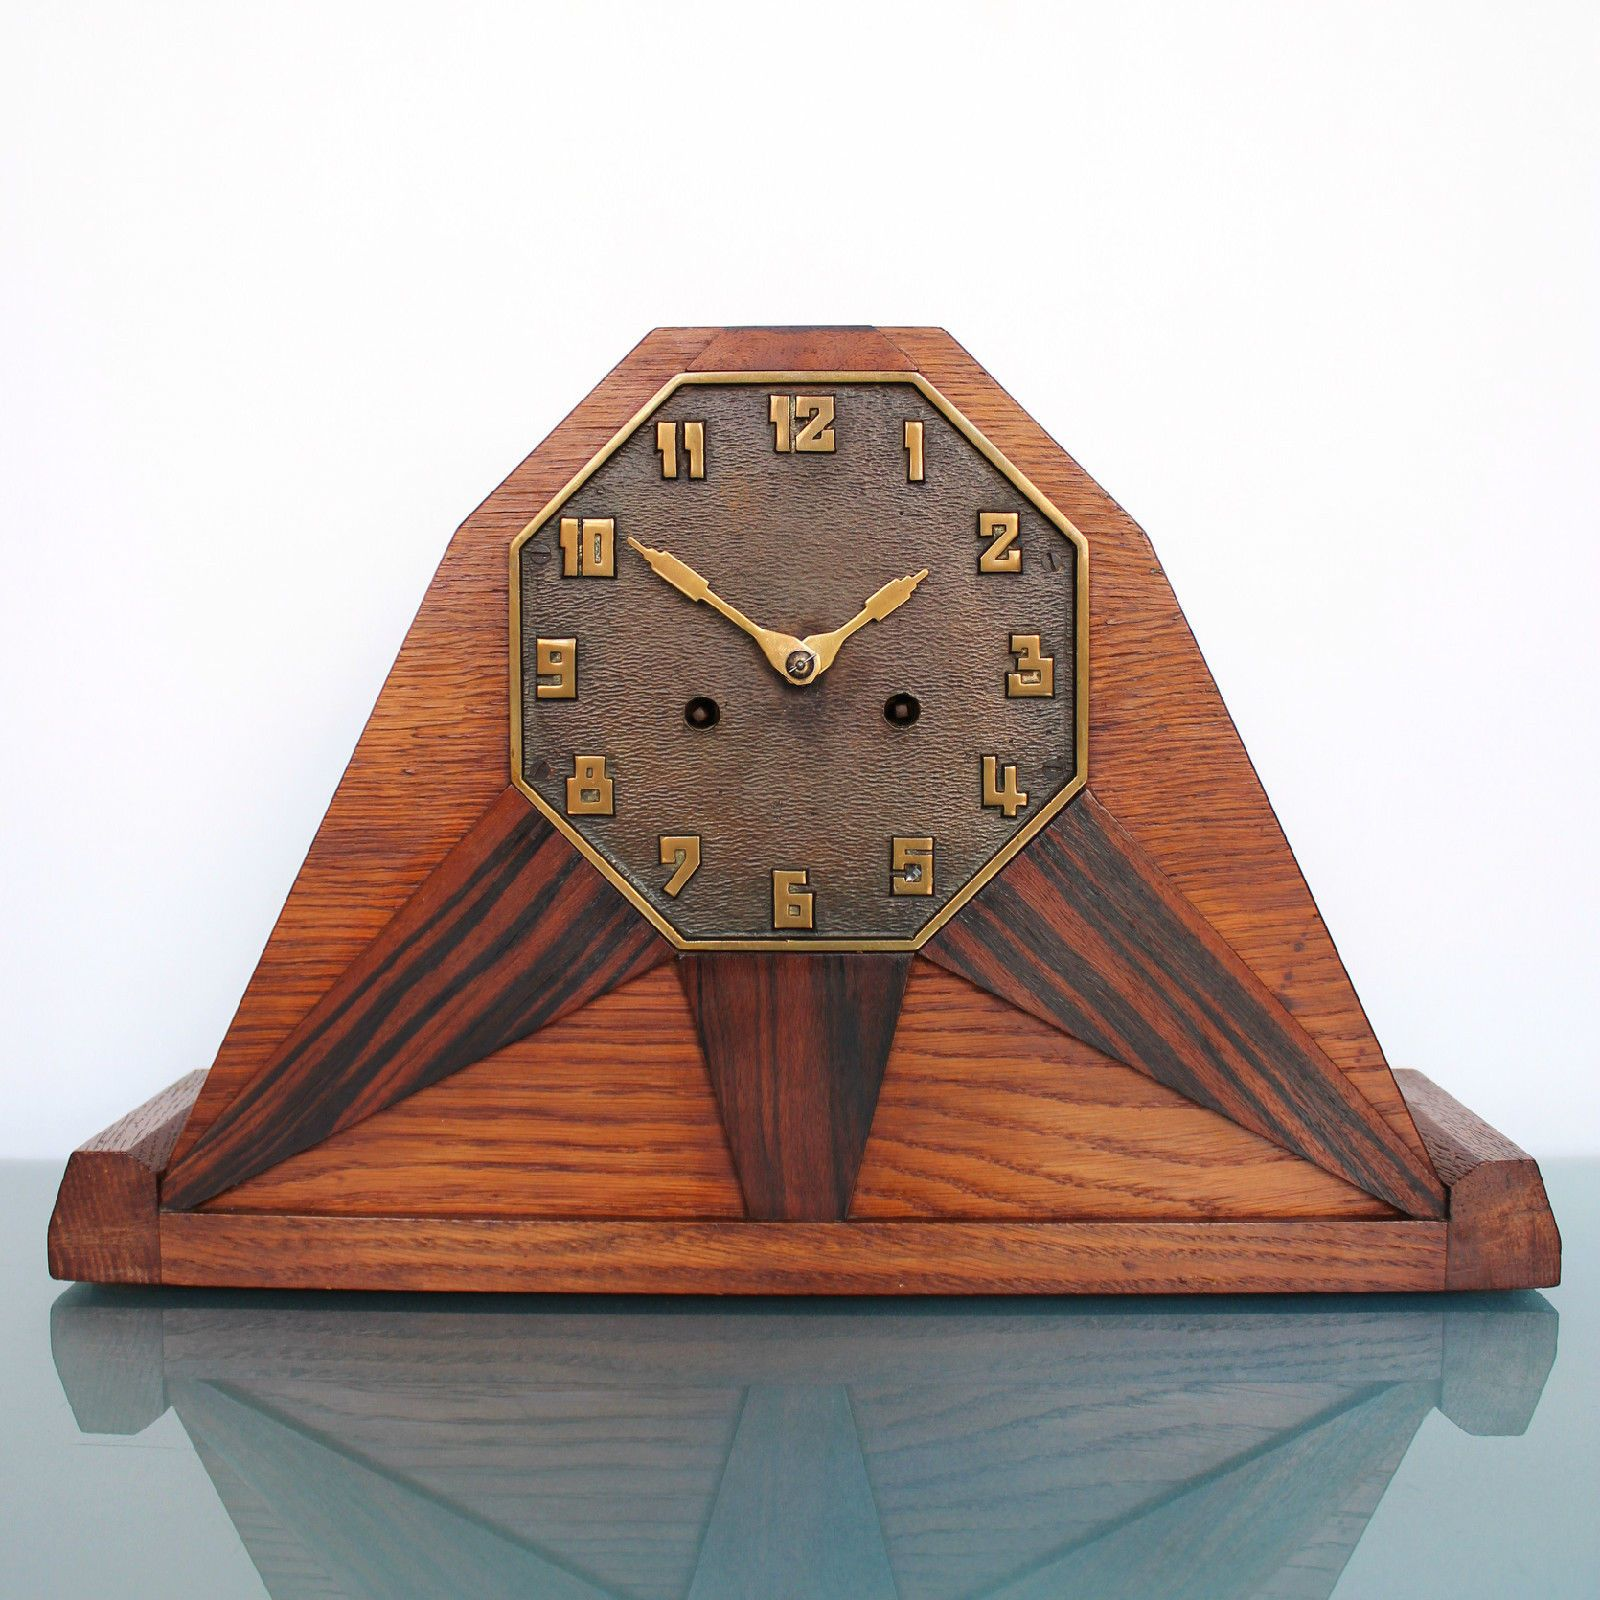 Details About Junghans Clock Mantel Pfeilkreuz Antique